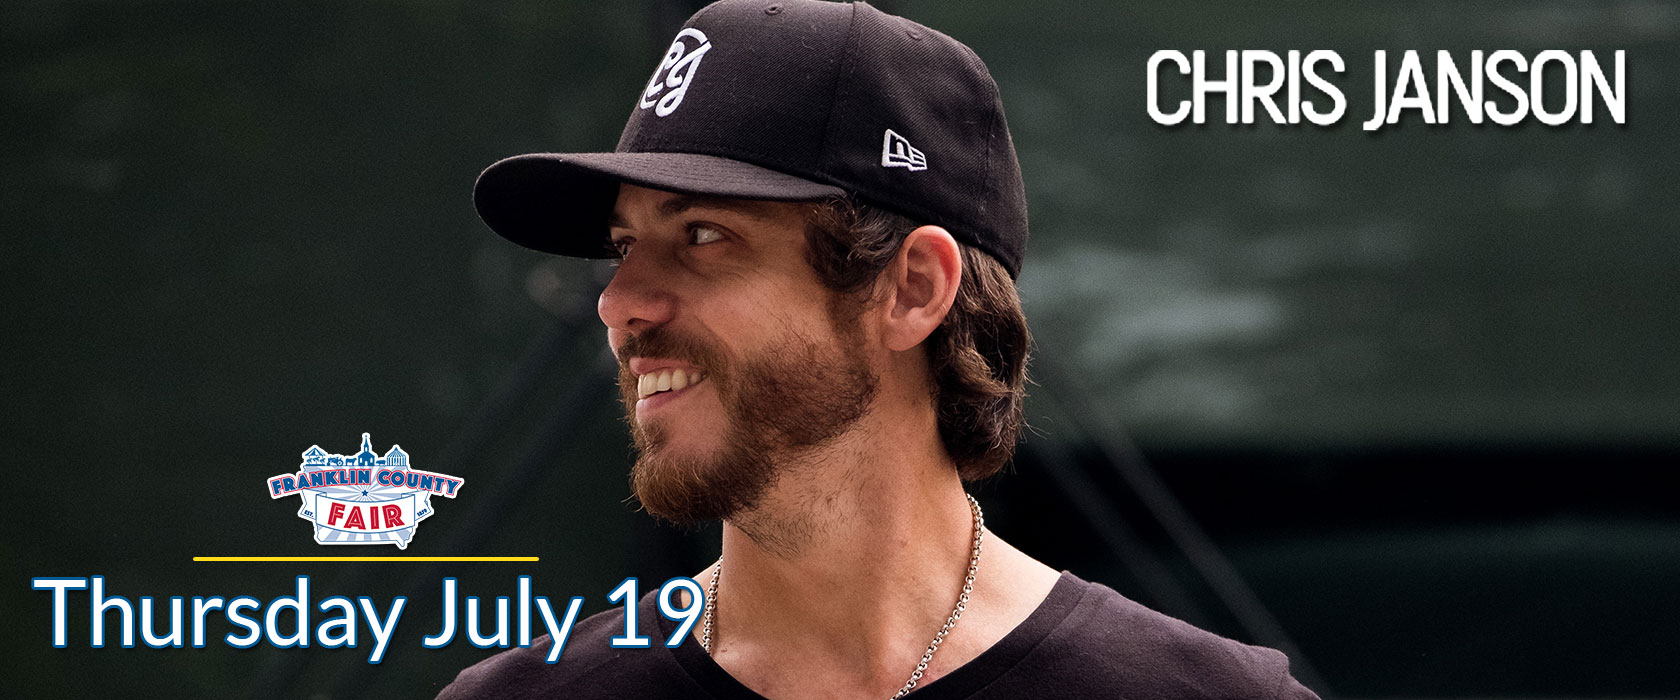 Franklin County Fair Chris Janson - Thursday July 19